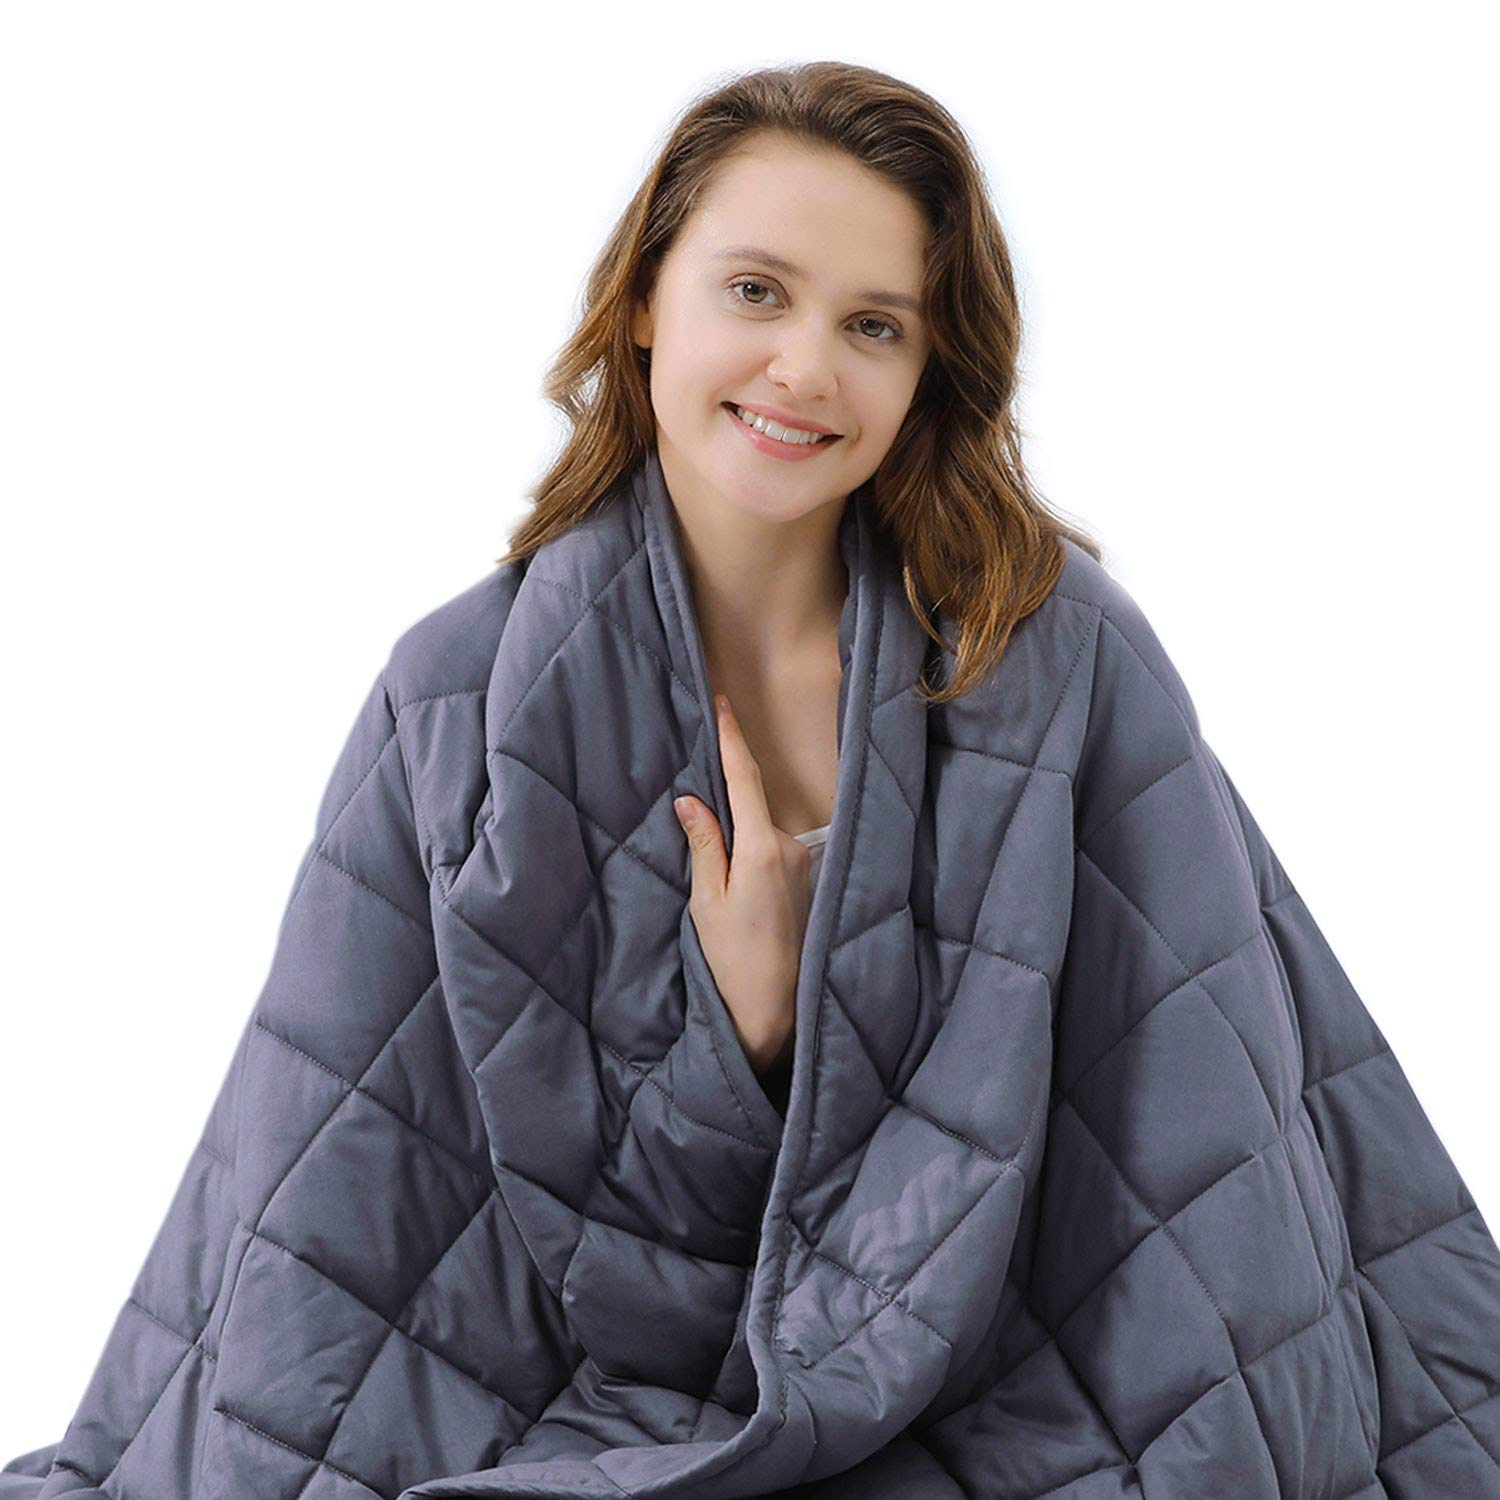 ZZZNEST Weighted Blanket Adult (16 lbs, 60''X80'', 7 Layers) Heavy Blanket for Improving Sleep/Premium Breathable Cotton with Glass Beads for 150-190 lbs, Individual by ZZZNEST